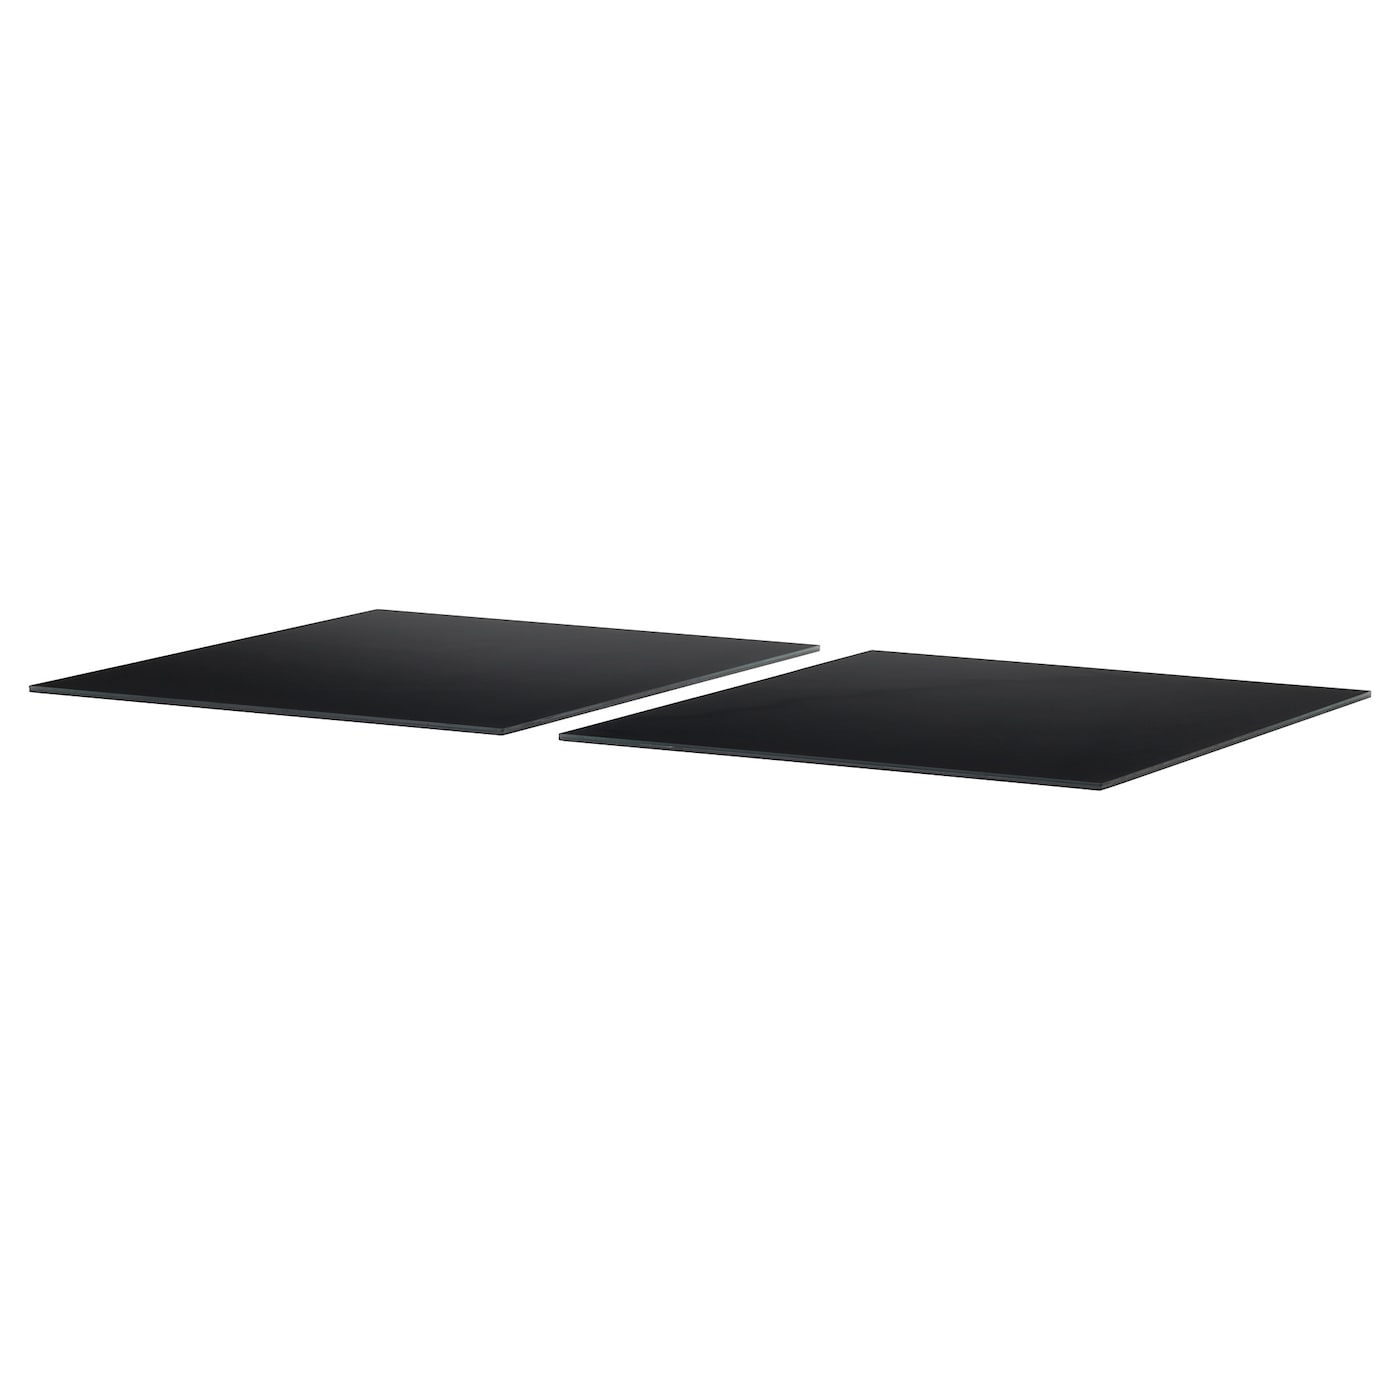 IKEA SJÄLLAND table top, outdoor Easy to keep clean – just wipe with a damp cloth.